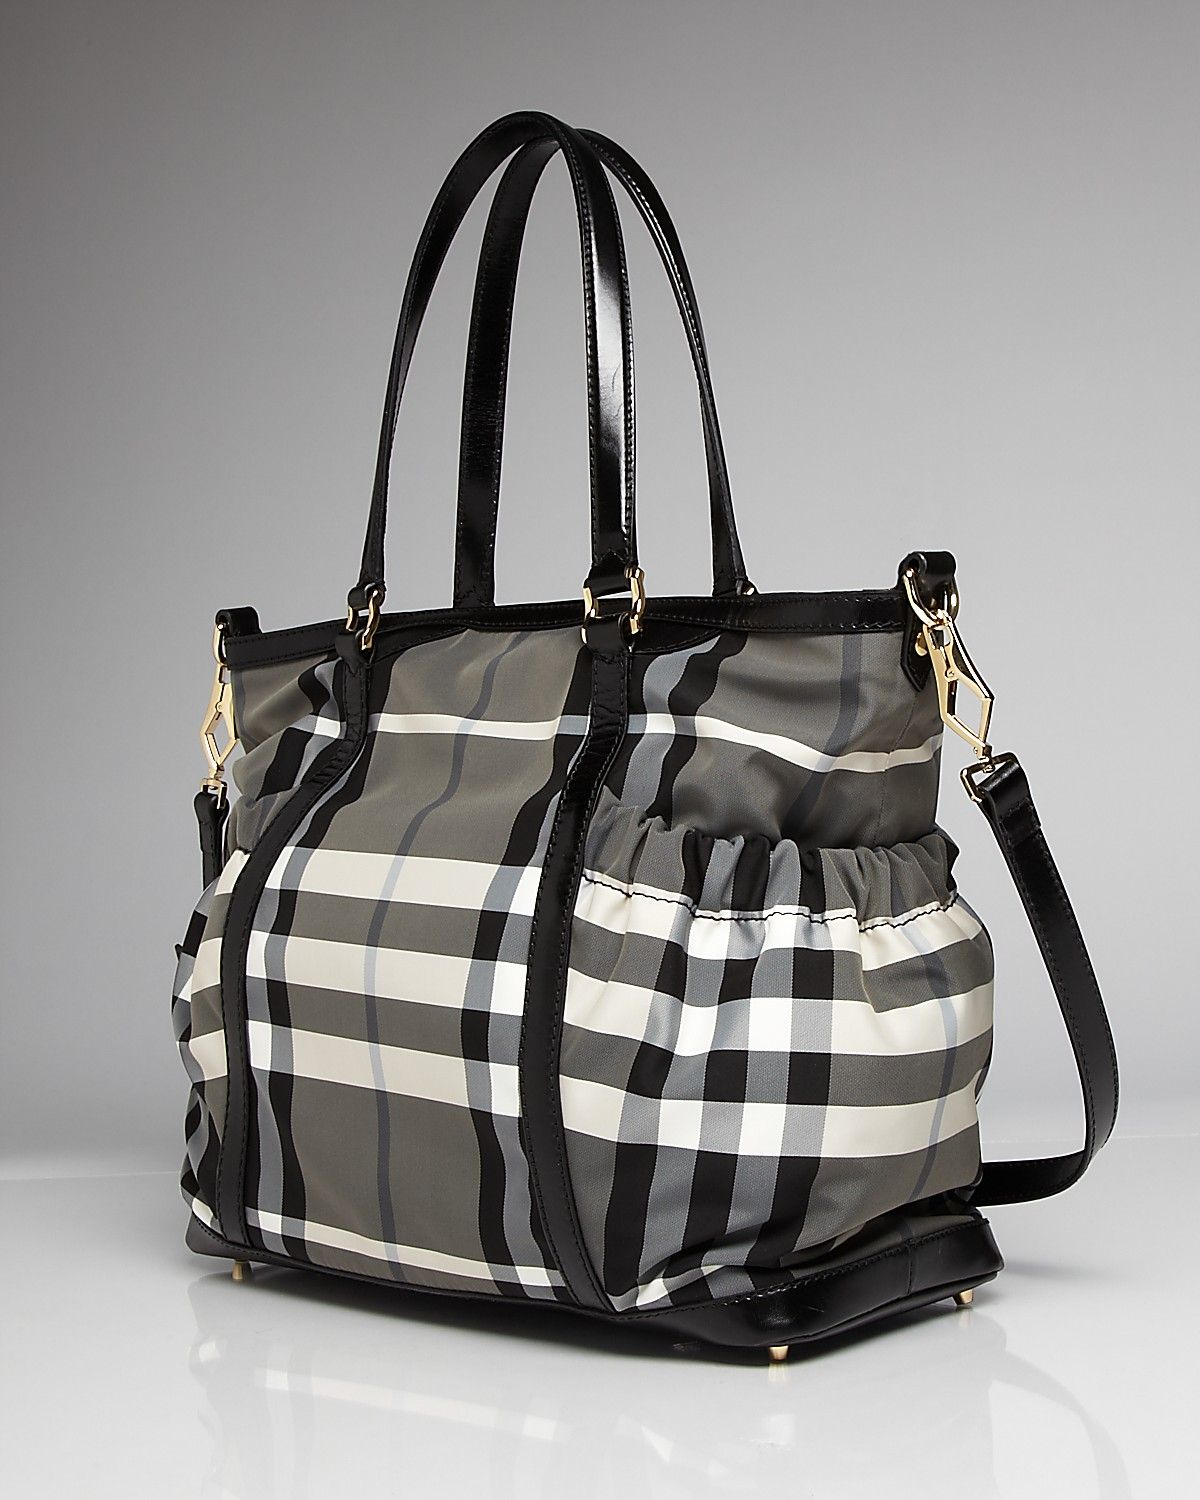 burberry beat check baby tote bag basically i like to use diaper bags as purses and travel. Black Bedroom Furniture Sets. Home Design Ideas